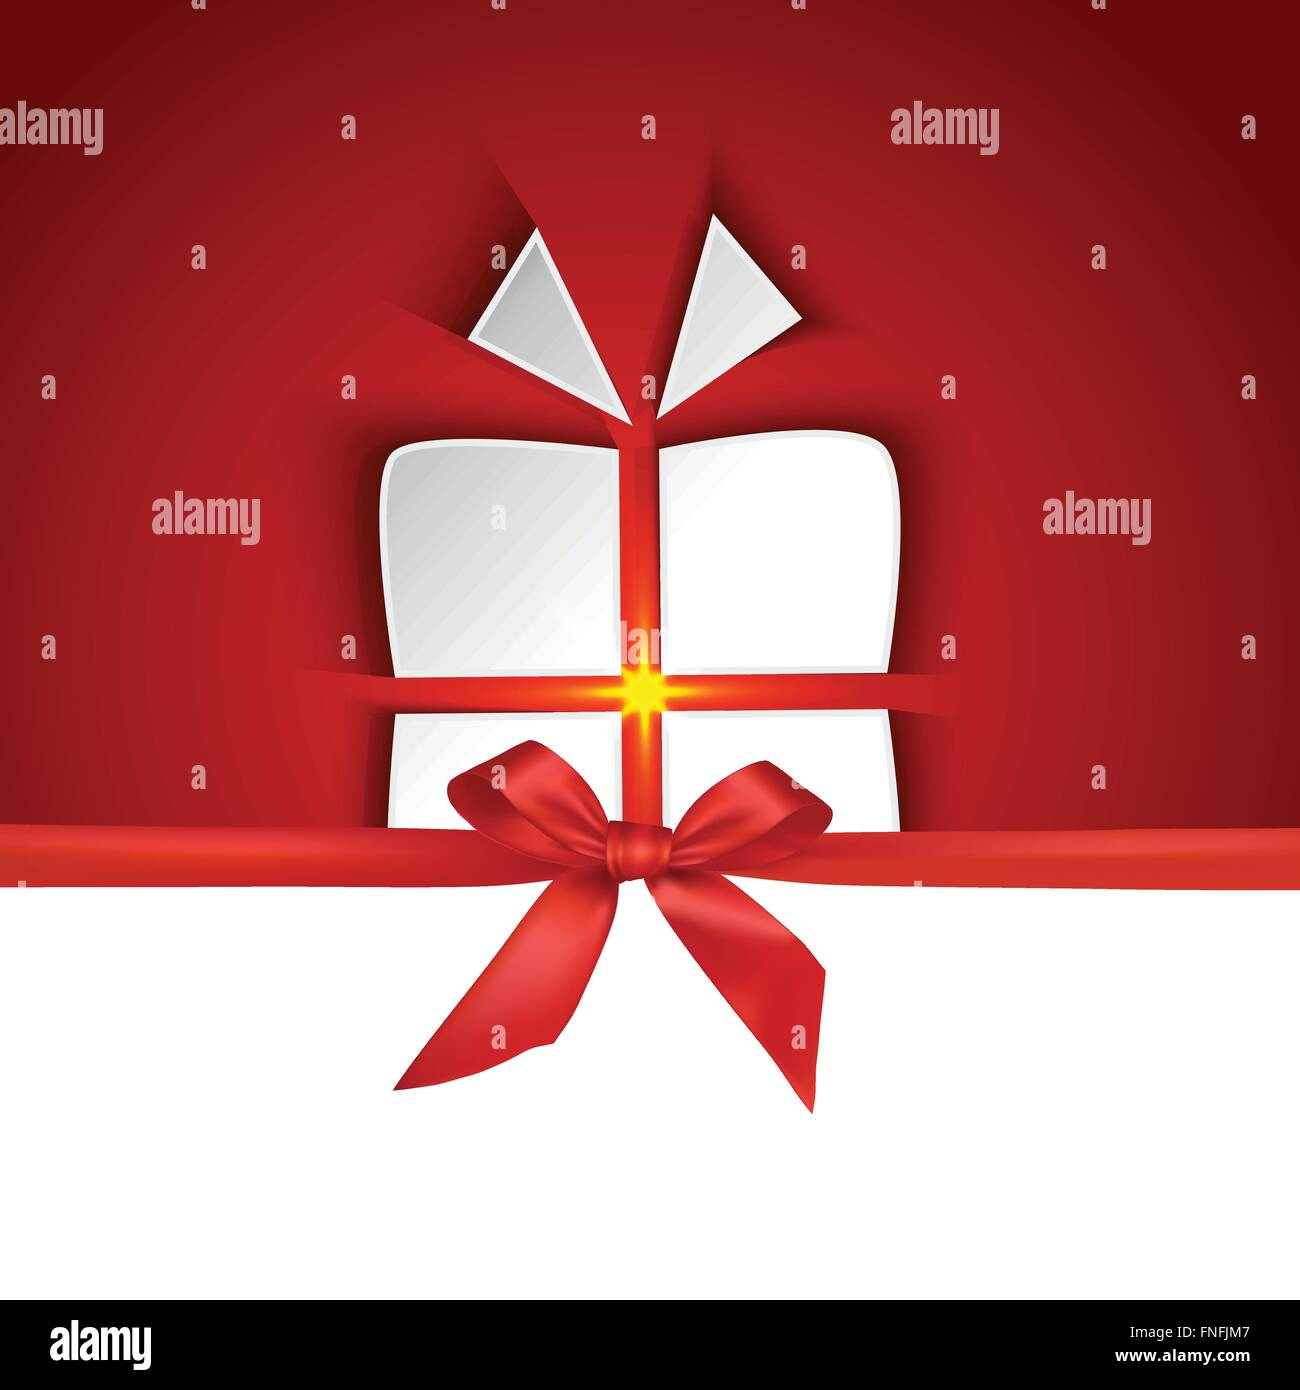 Gift box shape with red ribbon and shadow effect on red background - Stock Image